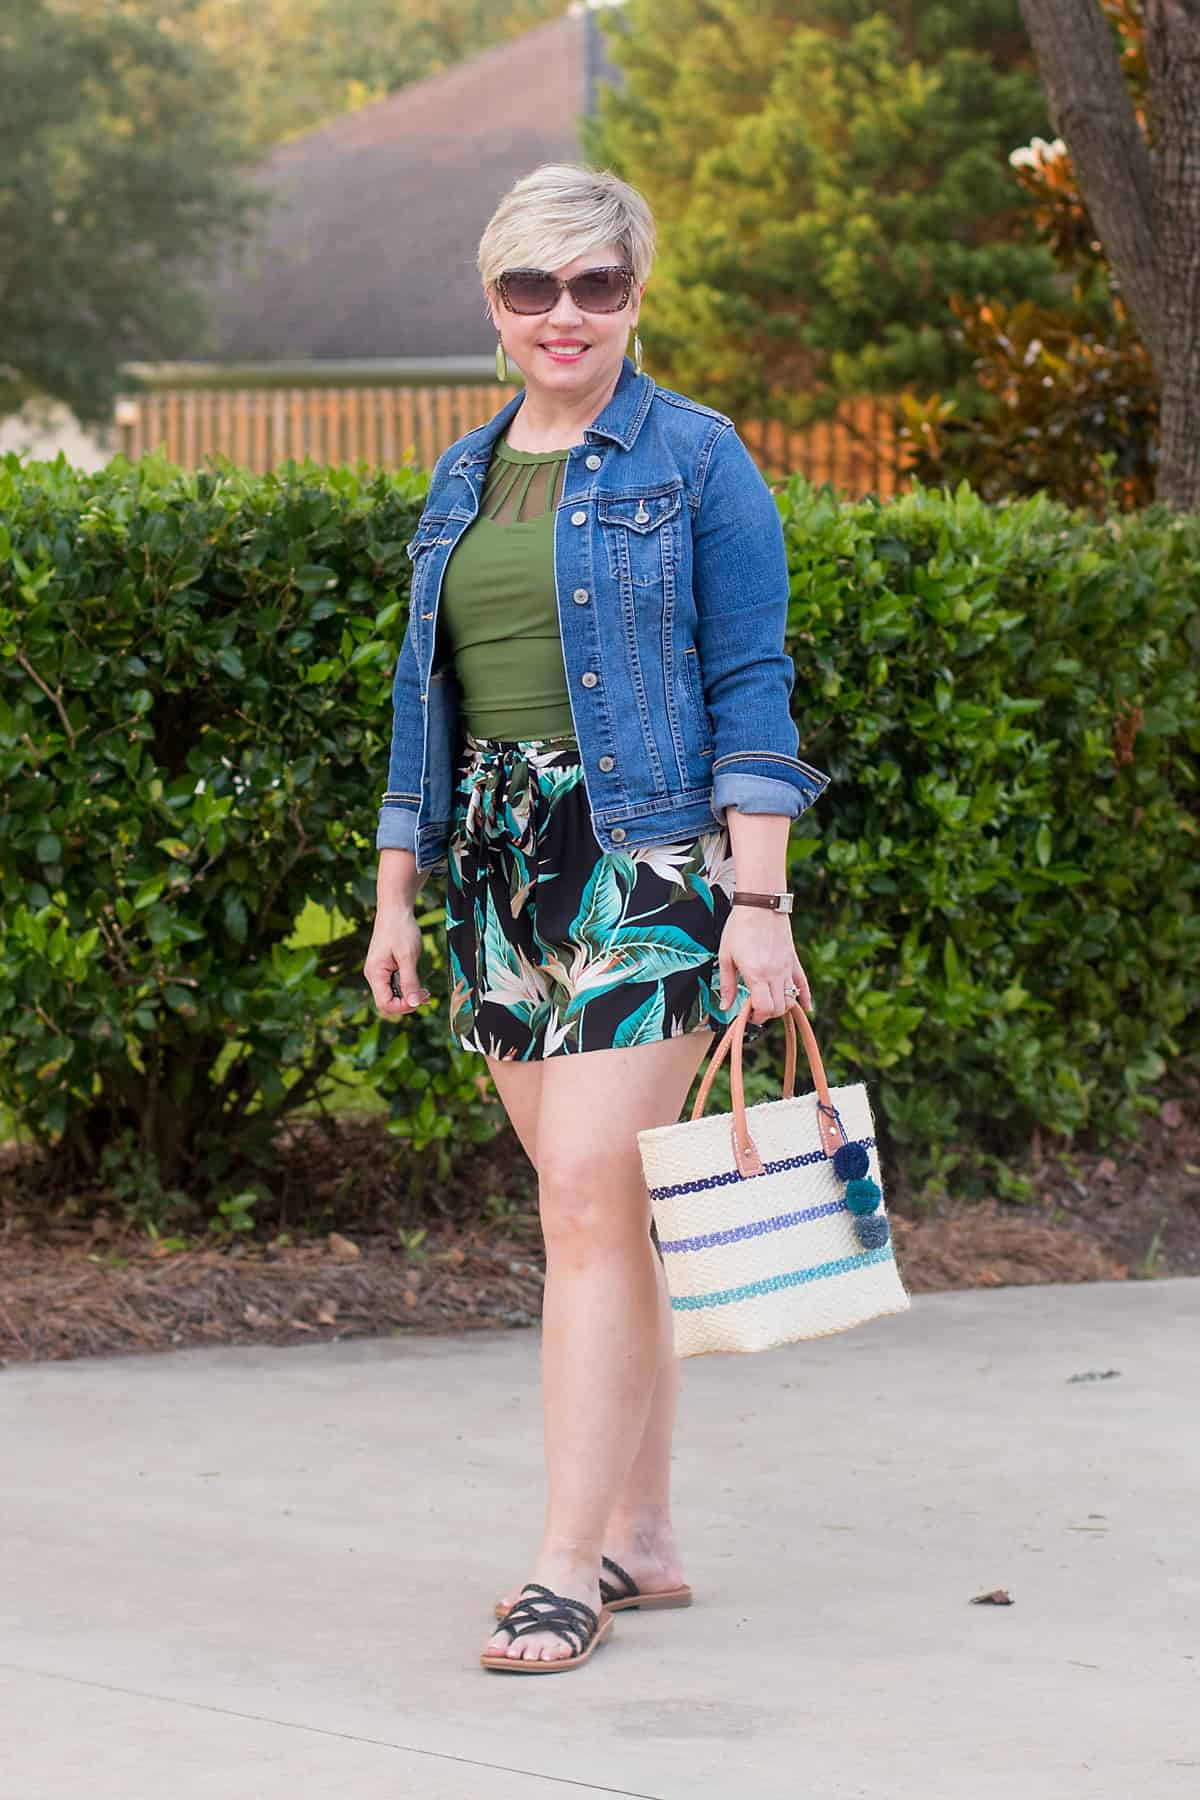 denim jacket and shorts summer outfit